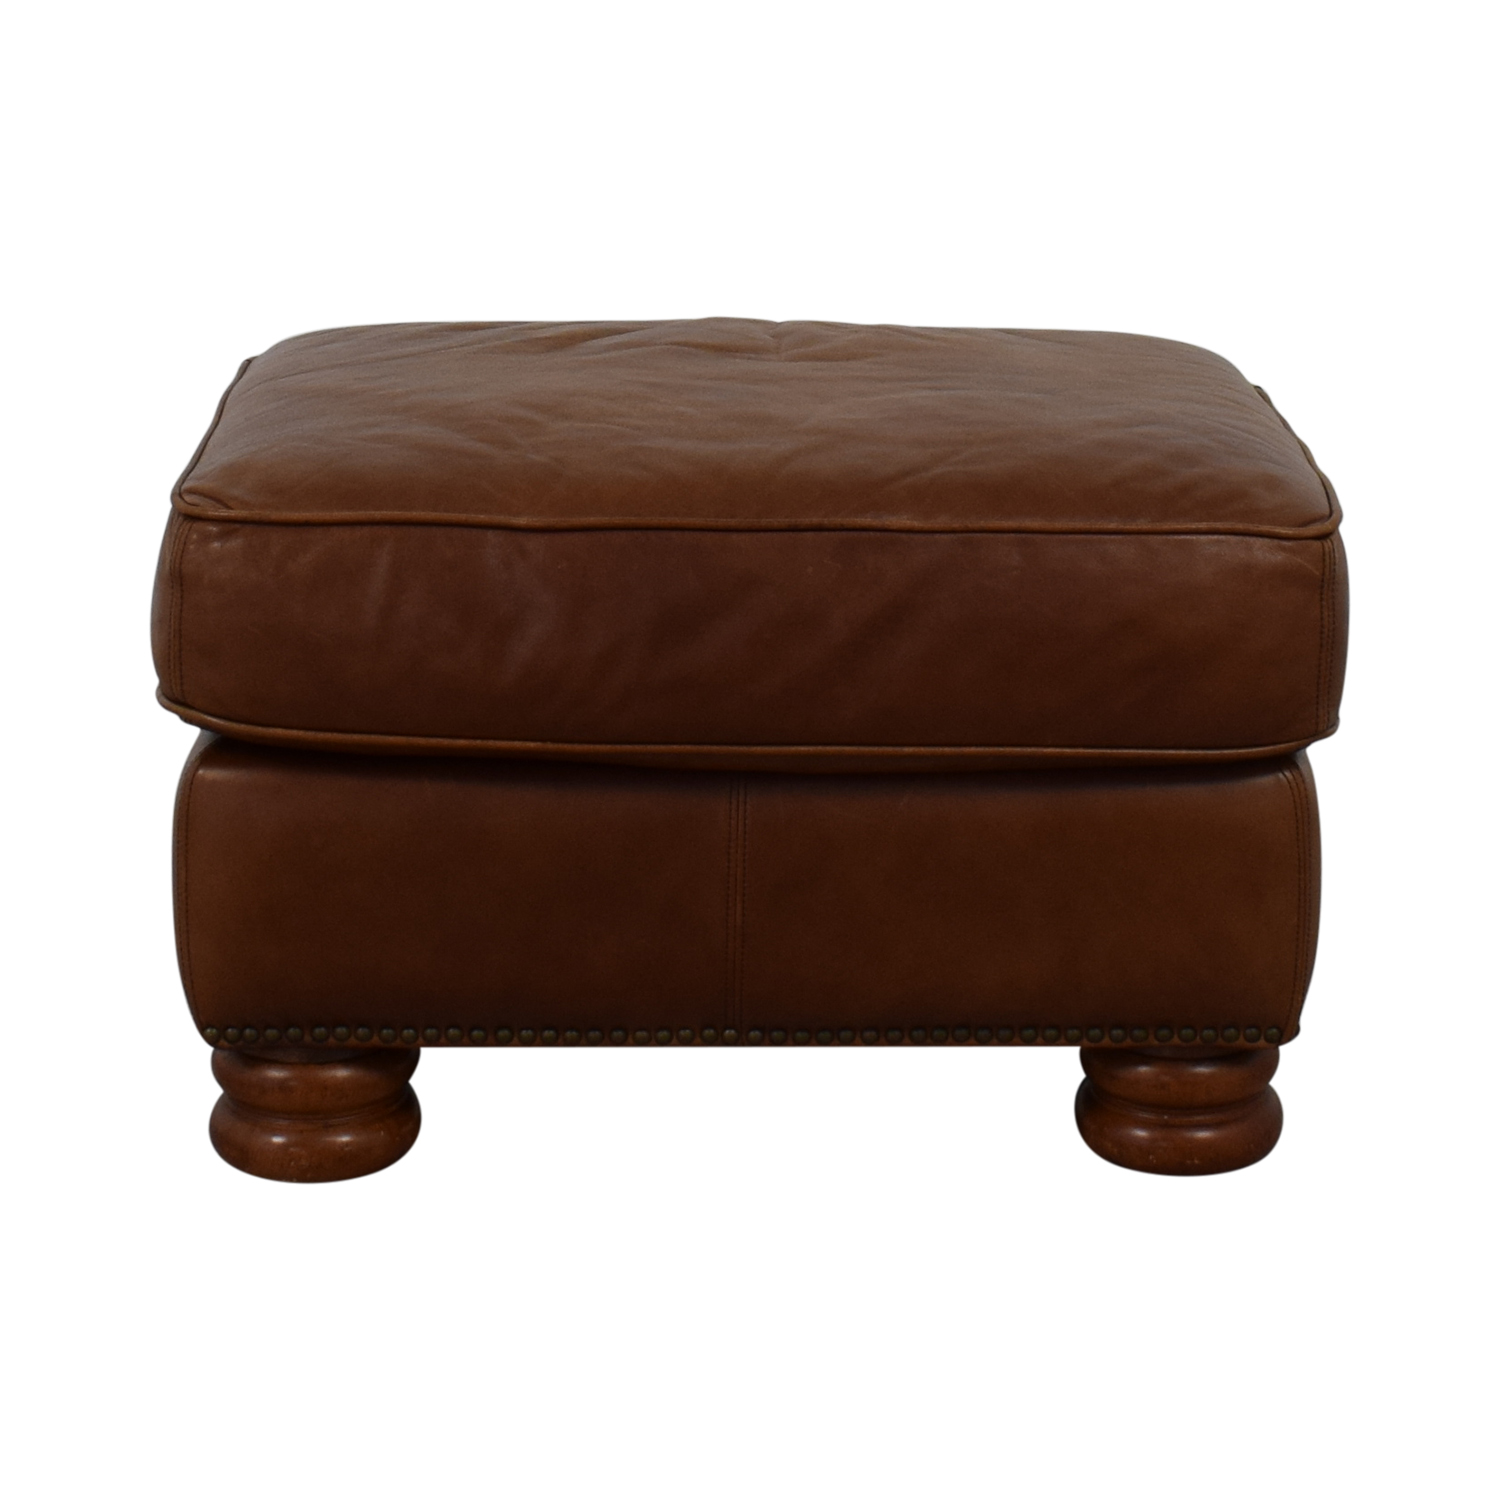 Thomasville Thomasville Brown Leather Ottoman Chairs